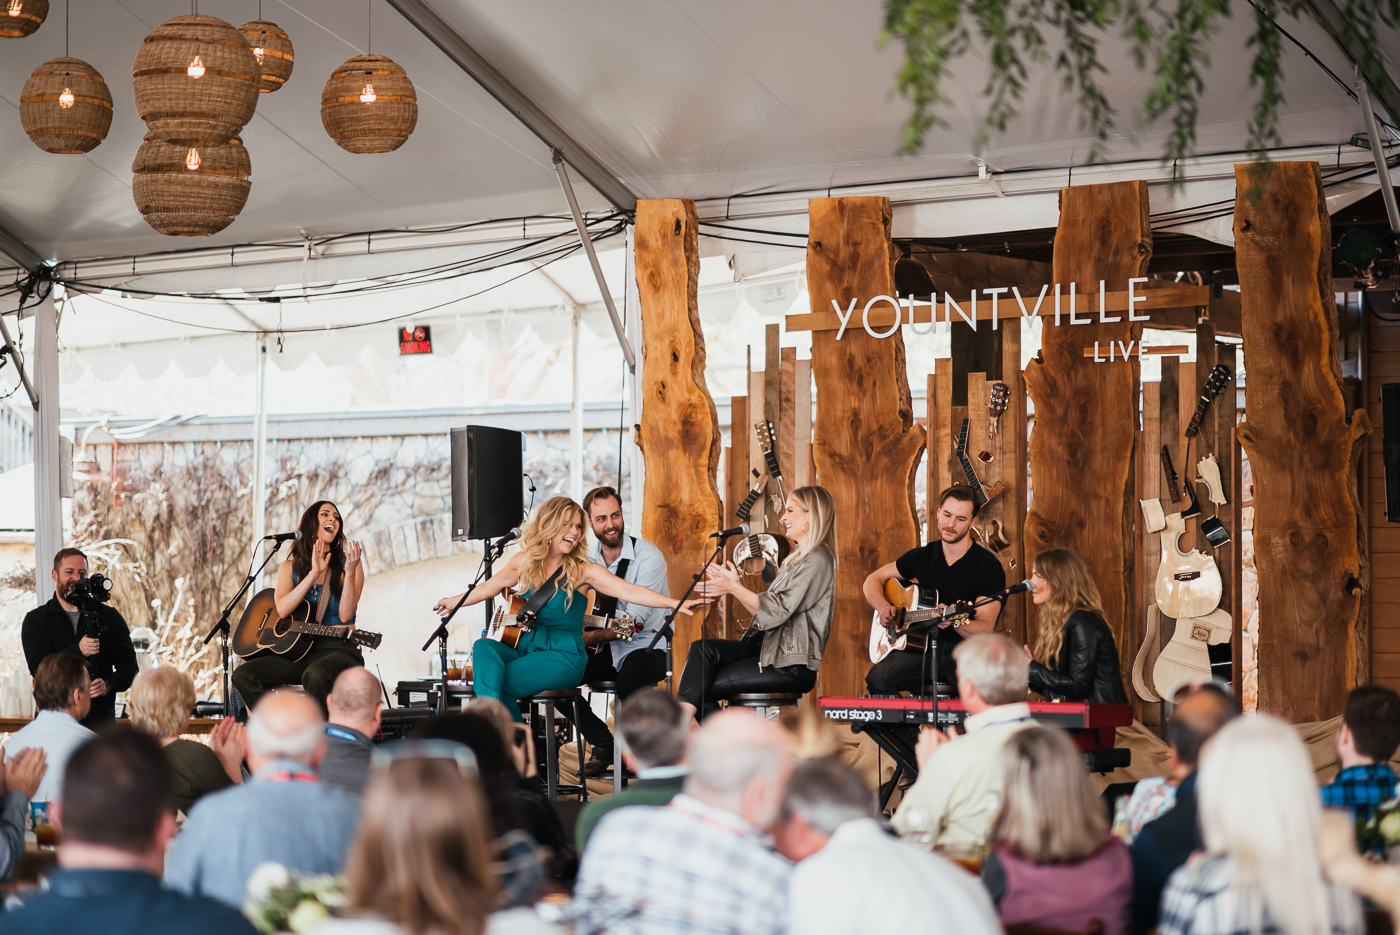 CMT Next Women of Country, Kelleigh Bannen, Natalie Stovall, Lauren Duski, and Ingrid Andress perform side by side in a traditional country music round for the Bubbles Brunch.